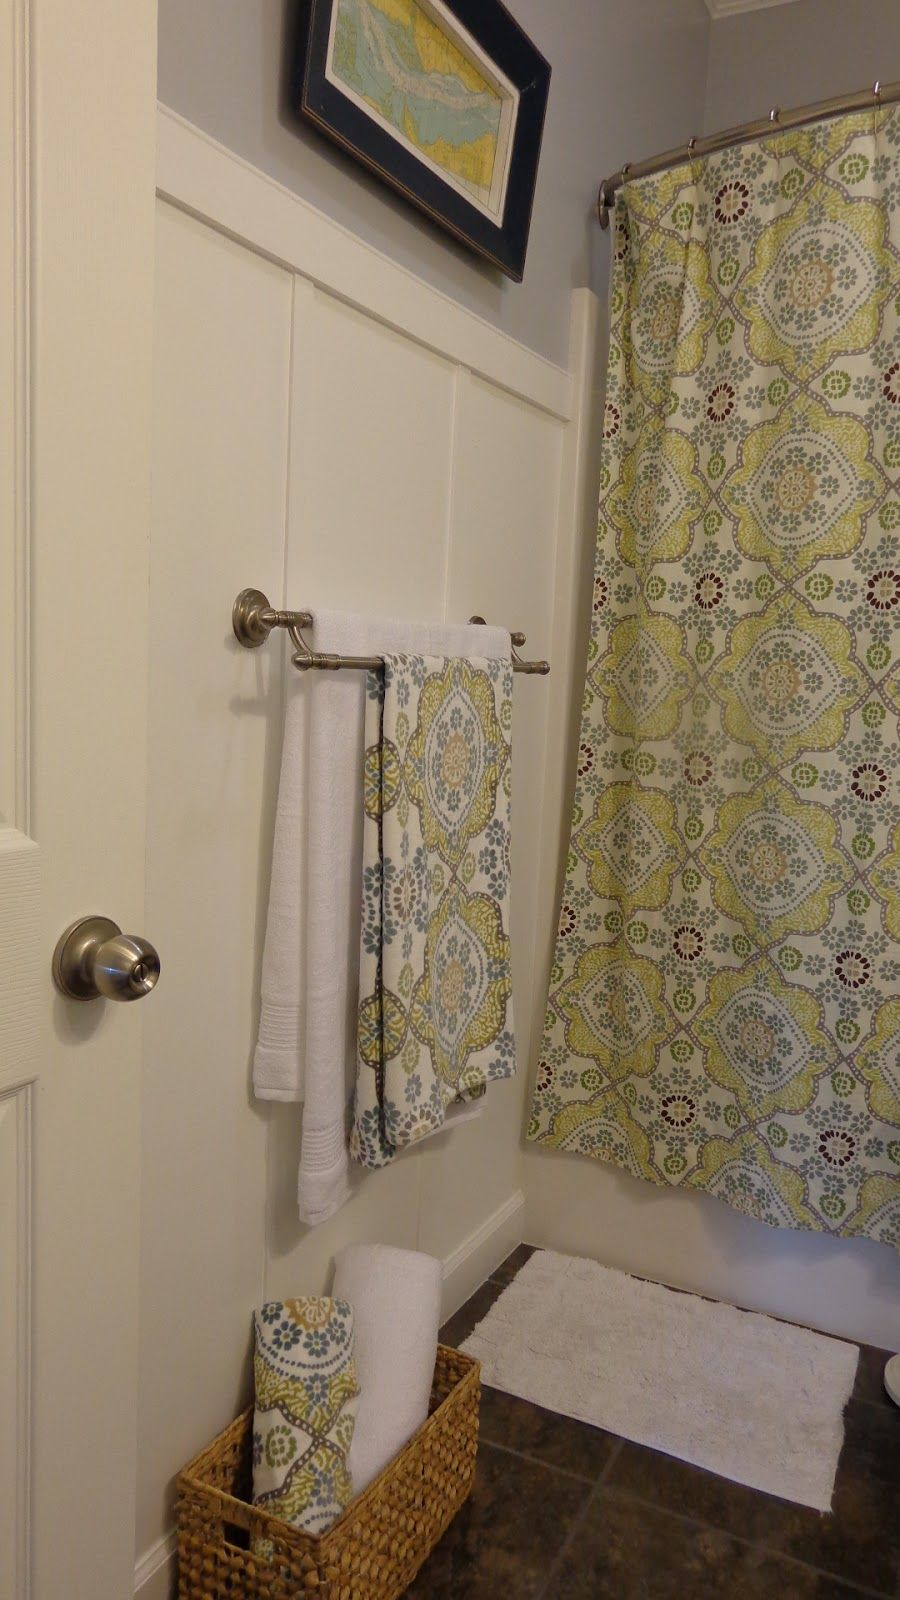 Retro Bathroom Makeovers diy with jen and b: diy board and batten bathroom makeover---long